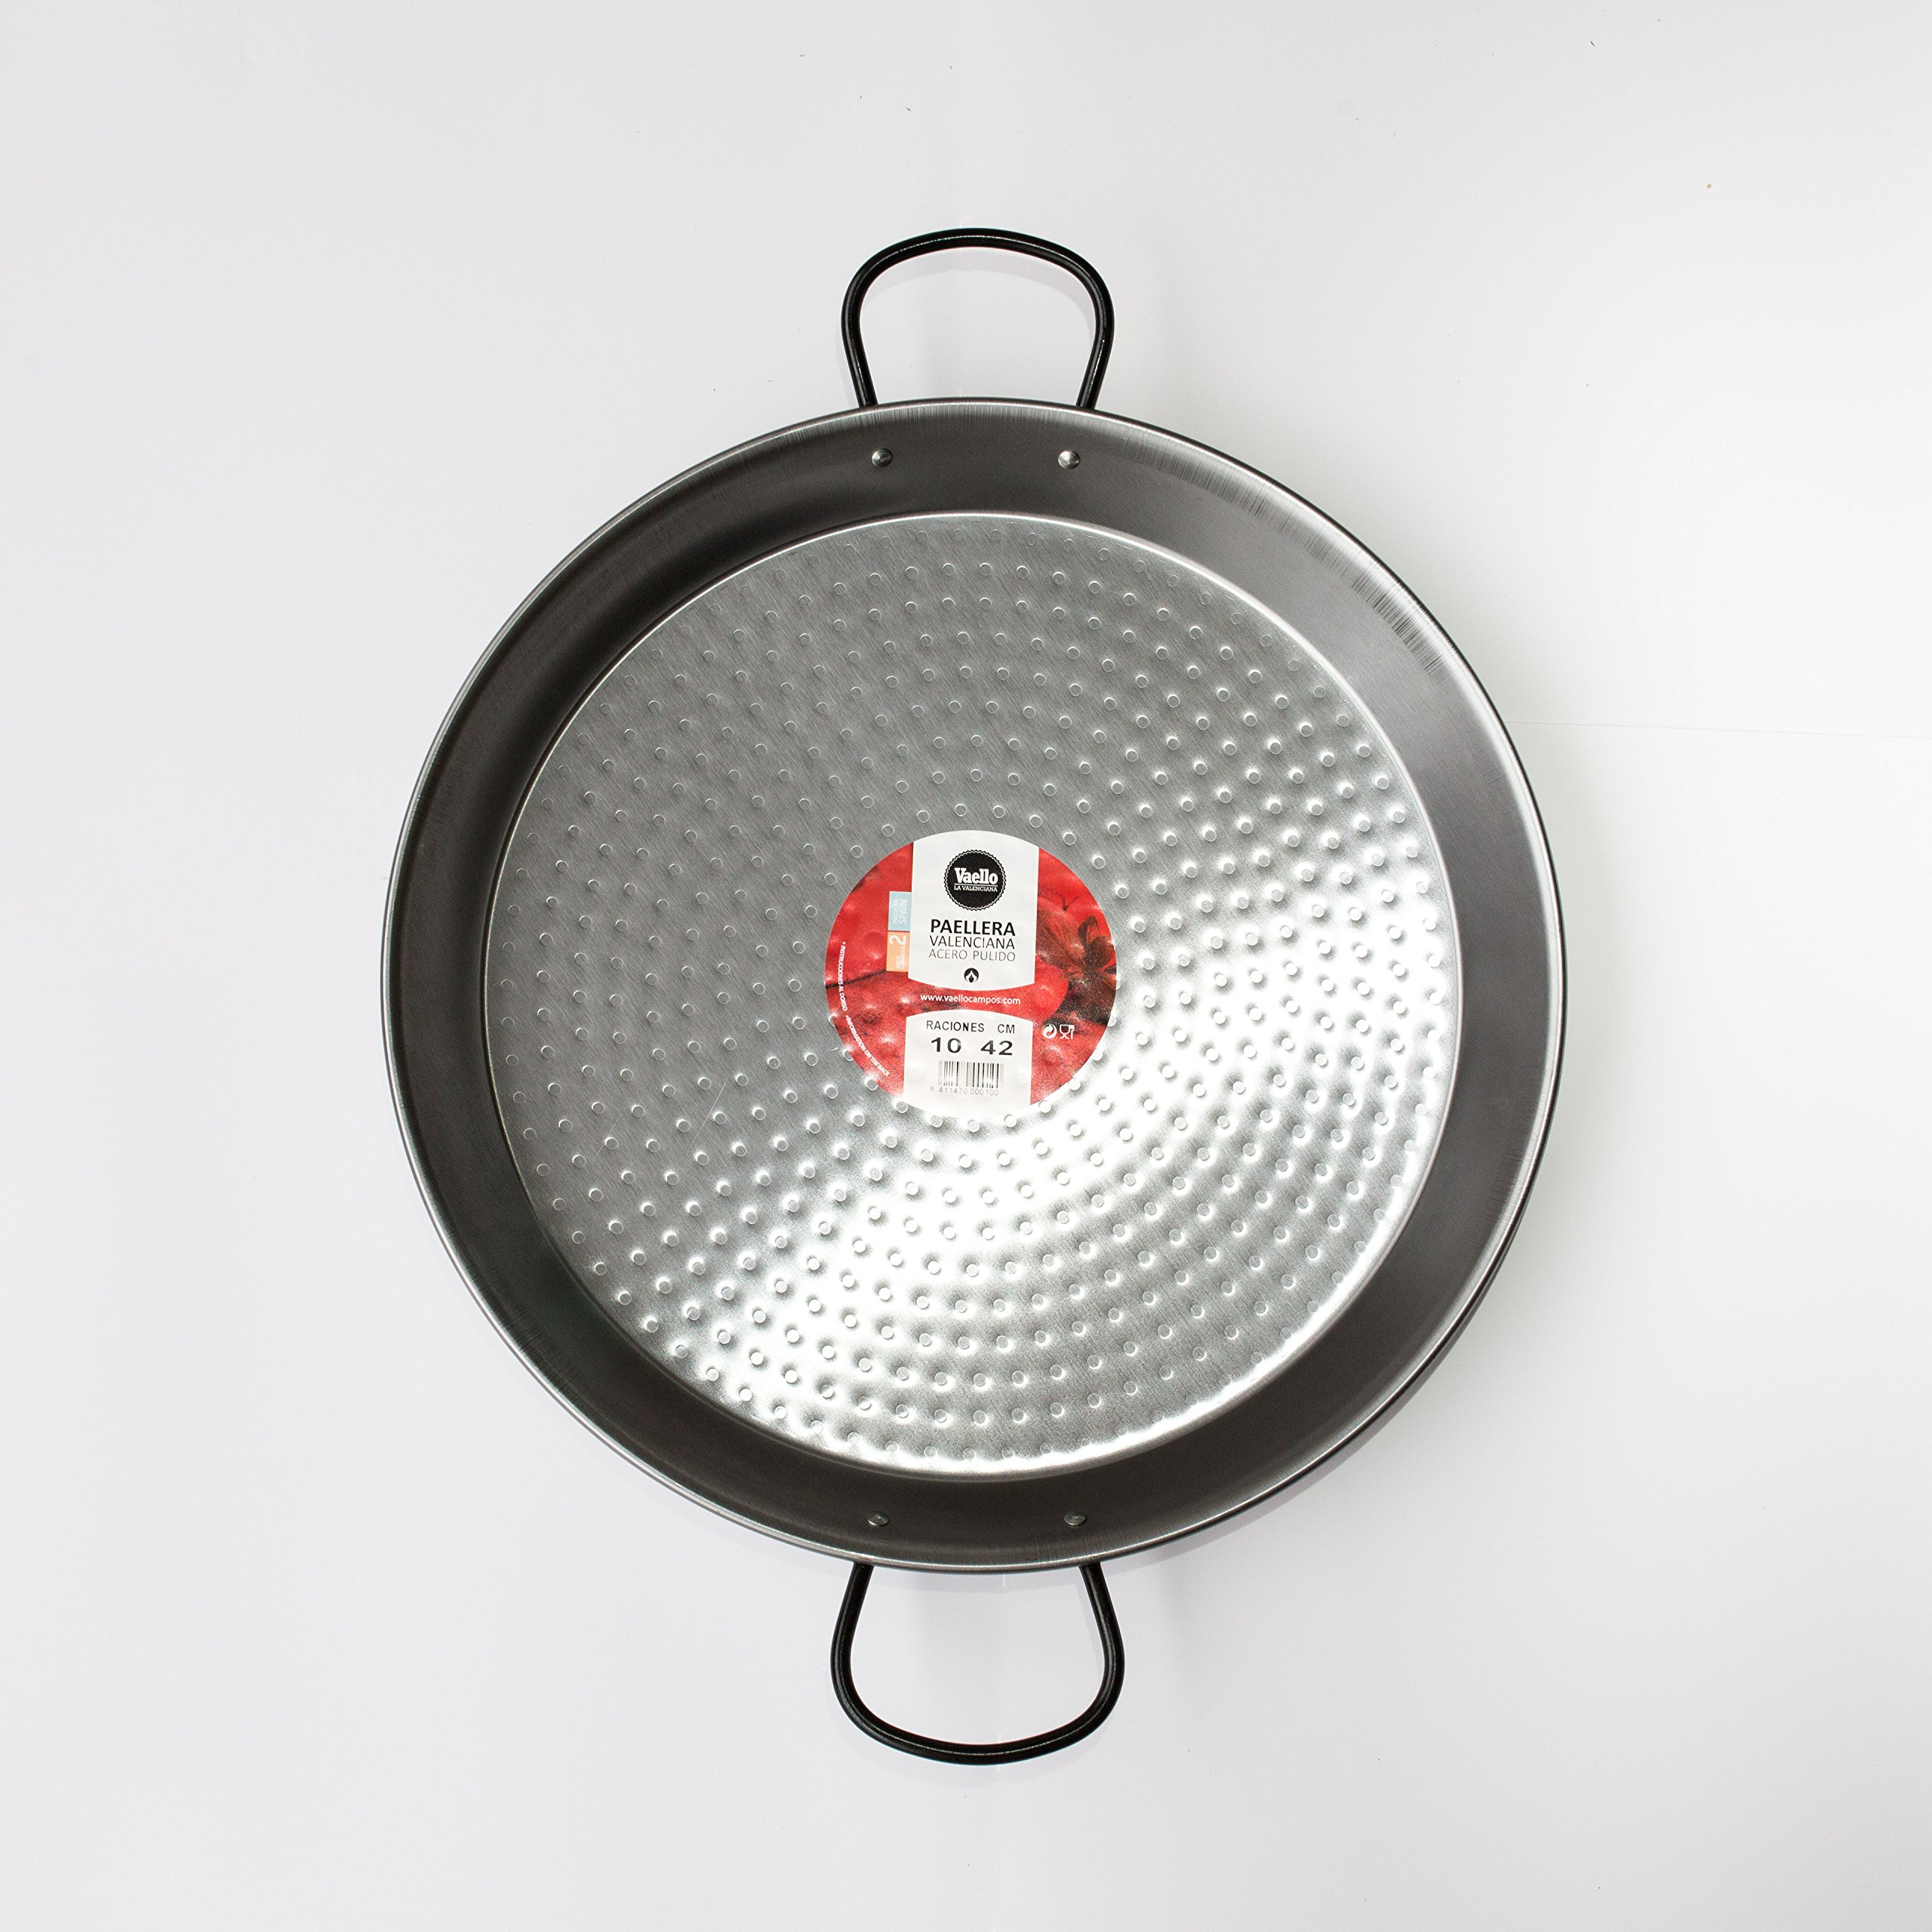 Polished Steel Valenciano paella pan 16.5Inches / 42cm / 10 servings